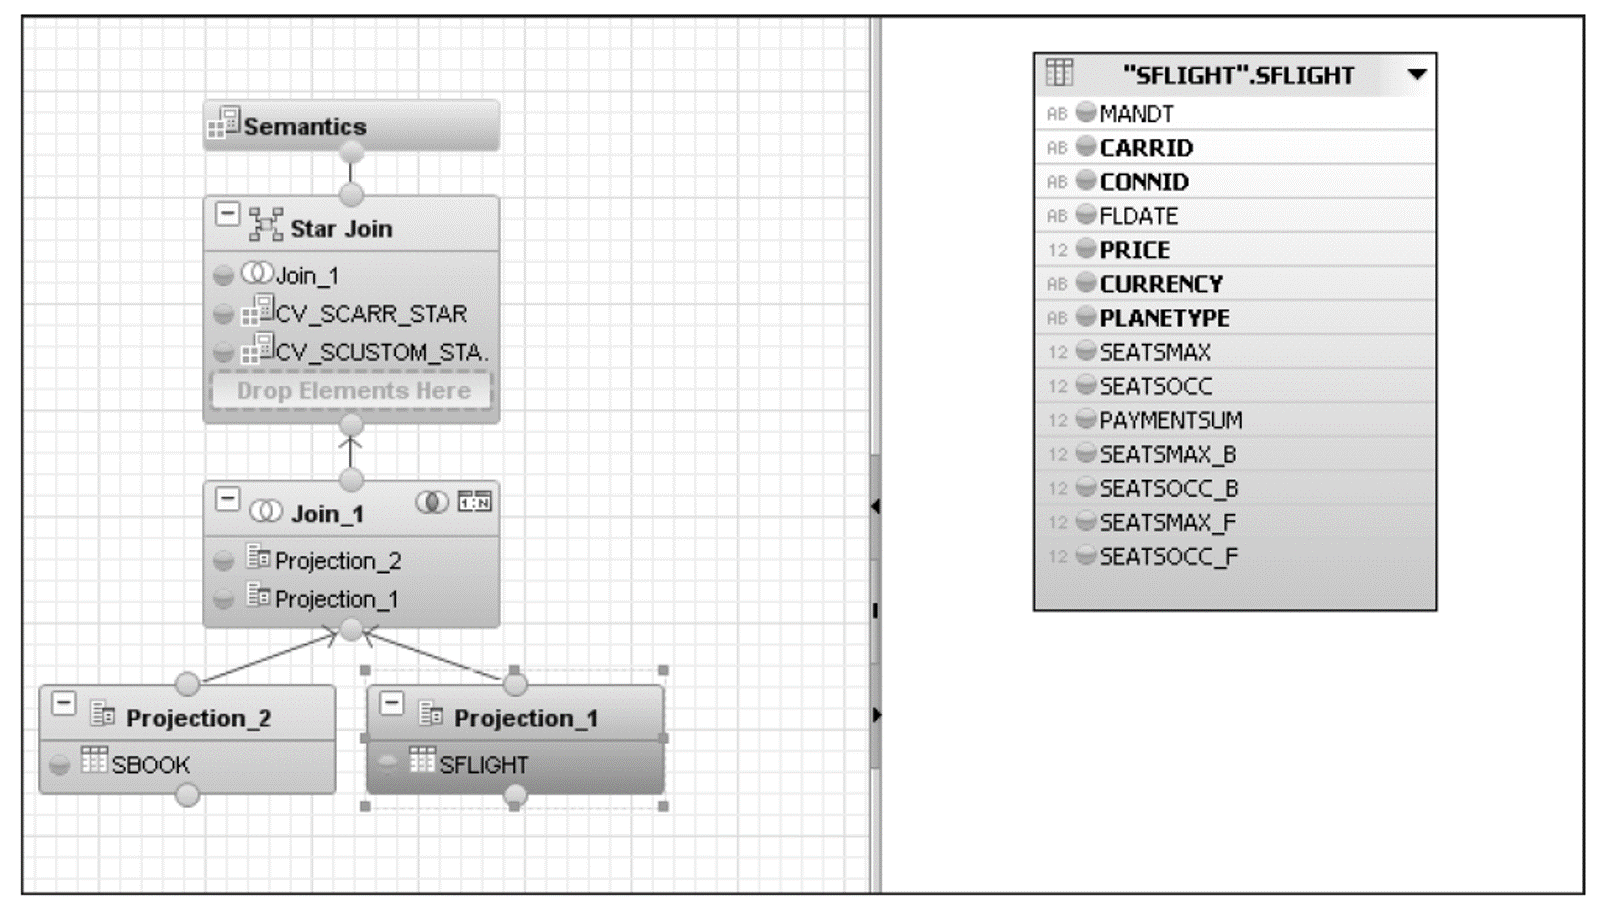 Projection 1 with SFLIGHT as a Table